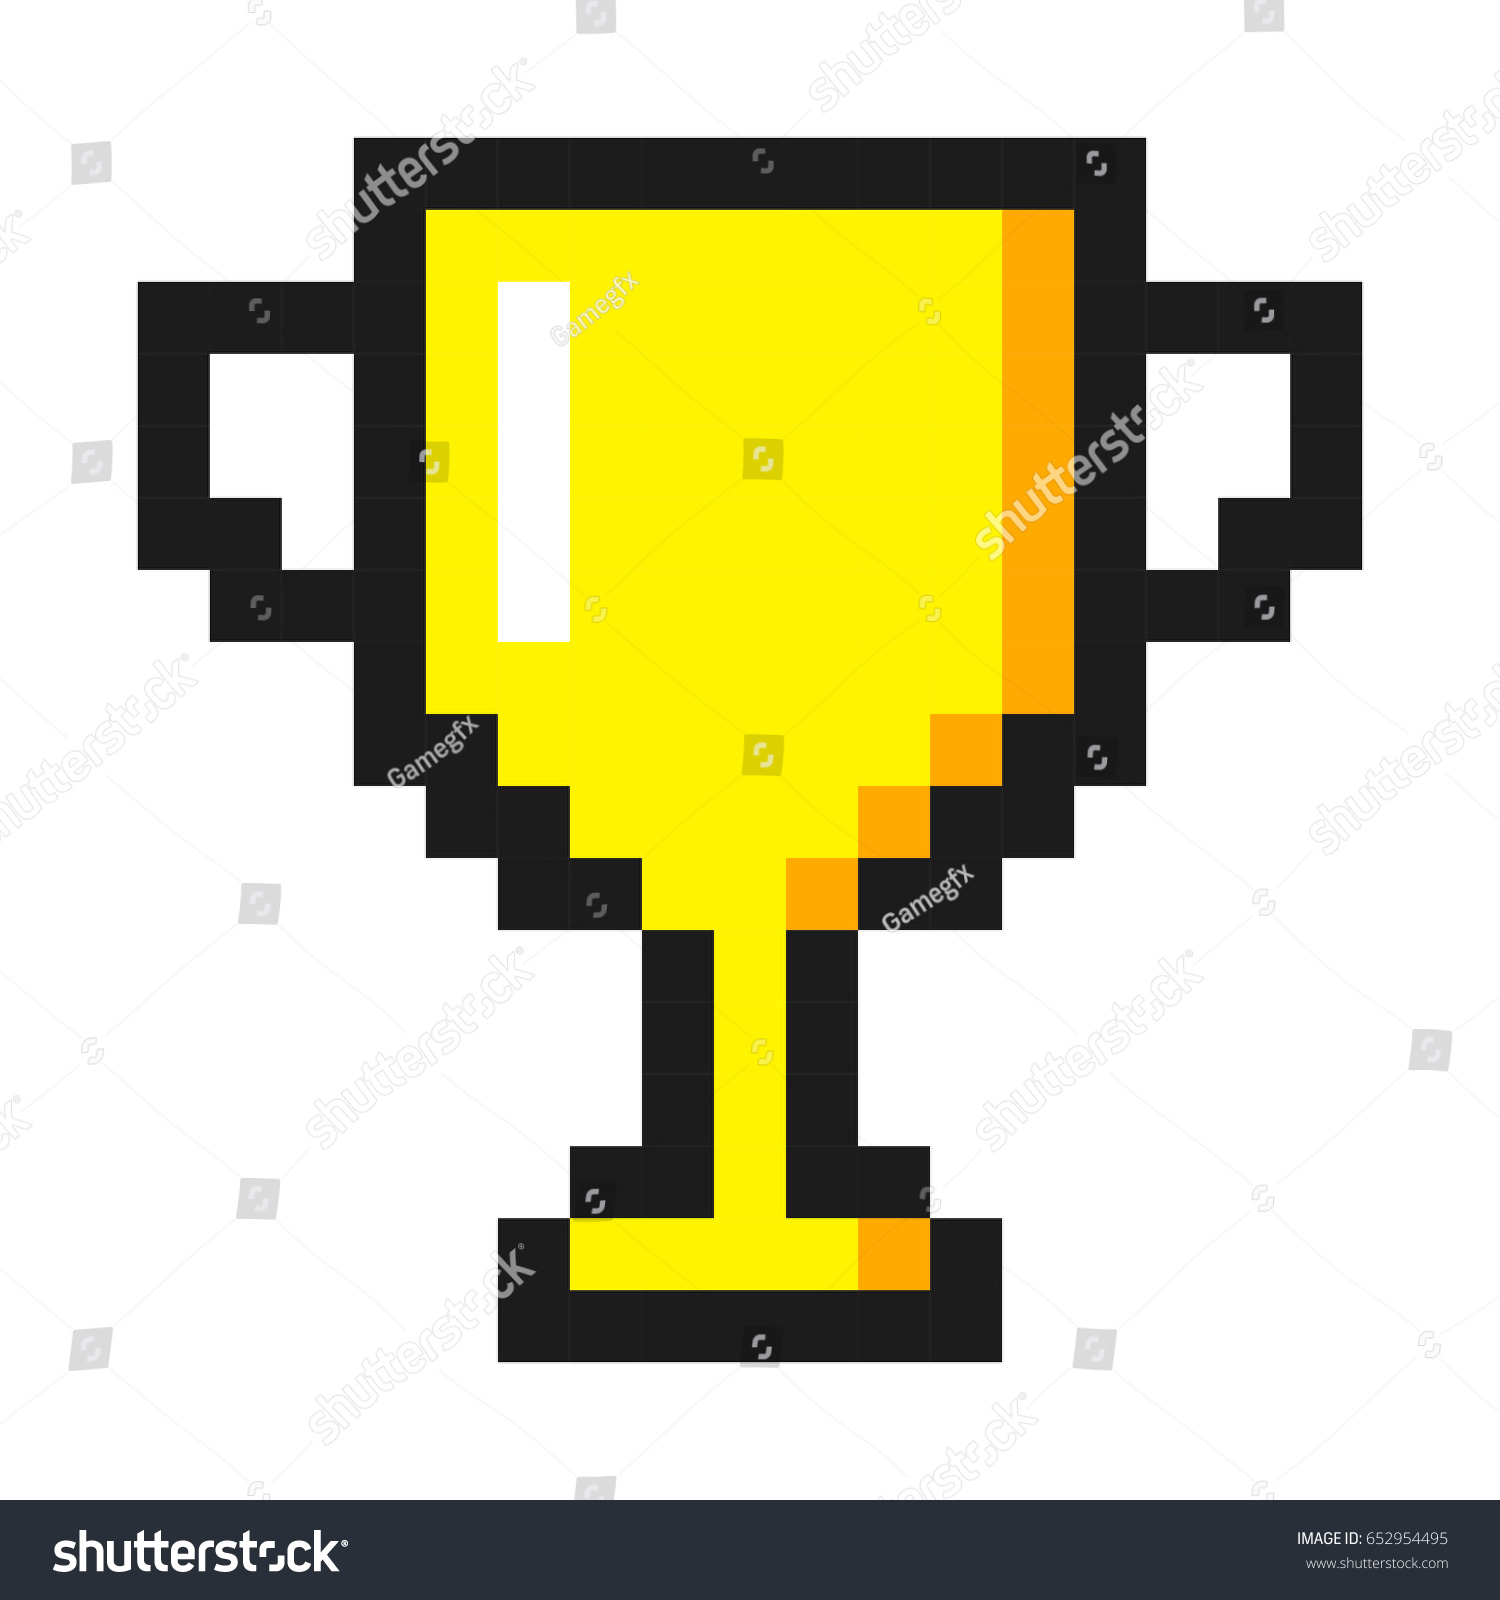 1hand Plate 2 besides Imagen De Archivo Alfombra Roja Image11853461 moreover Royalty Free Stock Image Gold Silver Bronze Trophy Image15794586 together with Honor Roll Martial Arts Patch in addition Watch. on award ceremony background